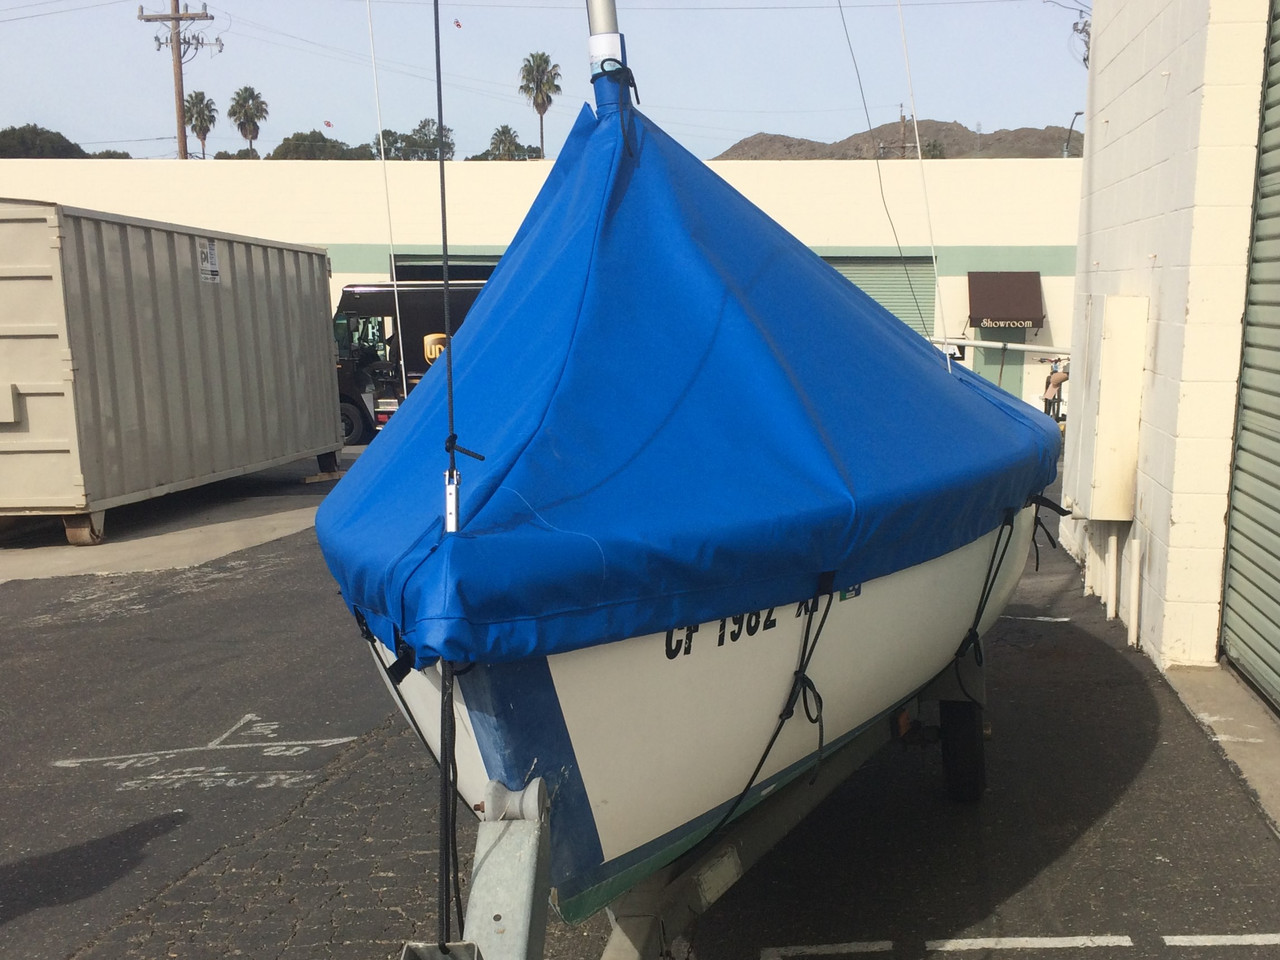 The Catalina 14.2 Mast Up Peaked Cover by SLO Sail and Canvas has custom tailored cutouts for the rigging and the mast.